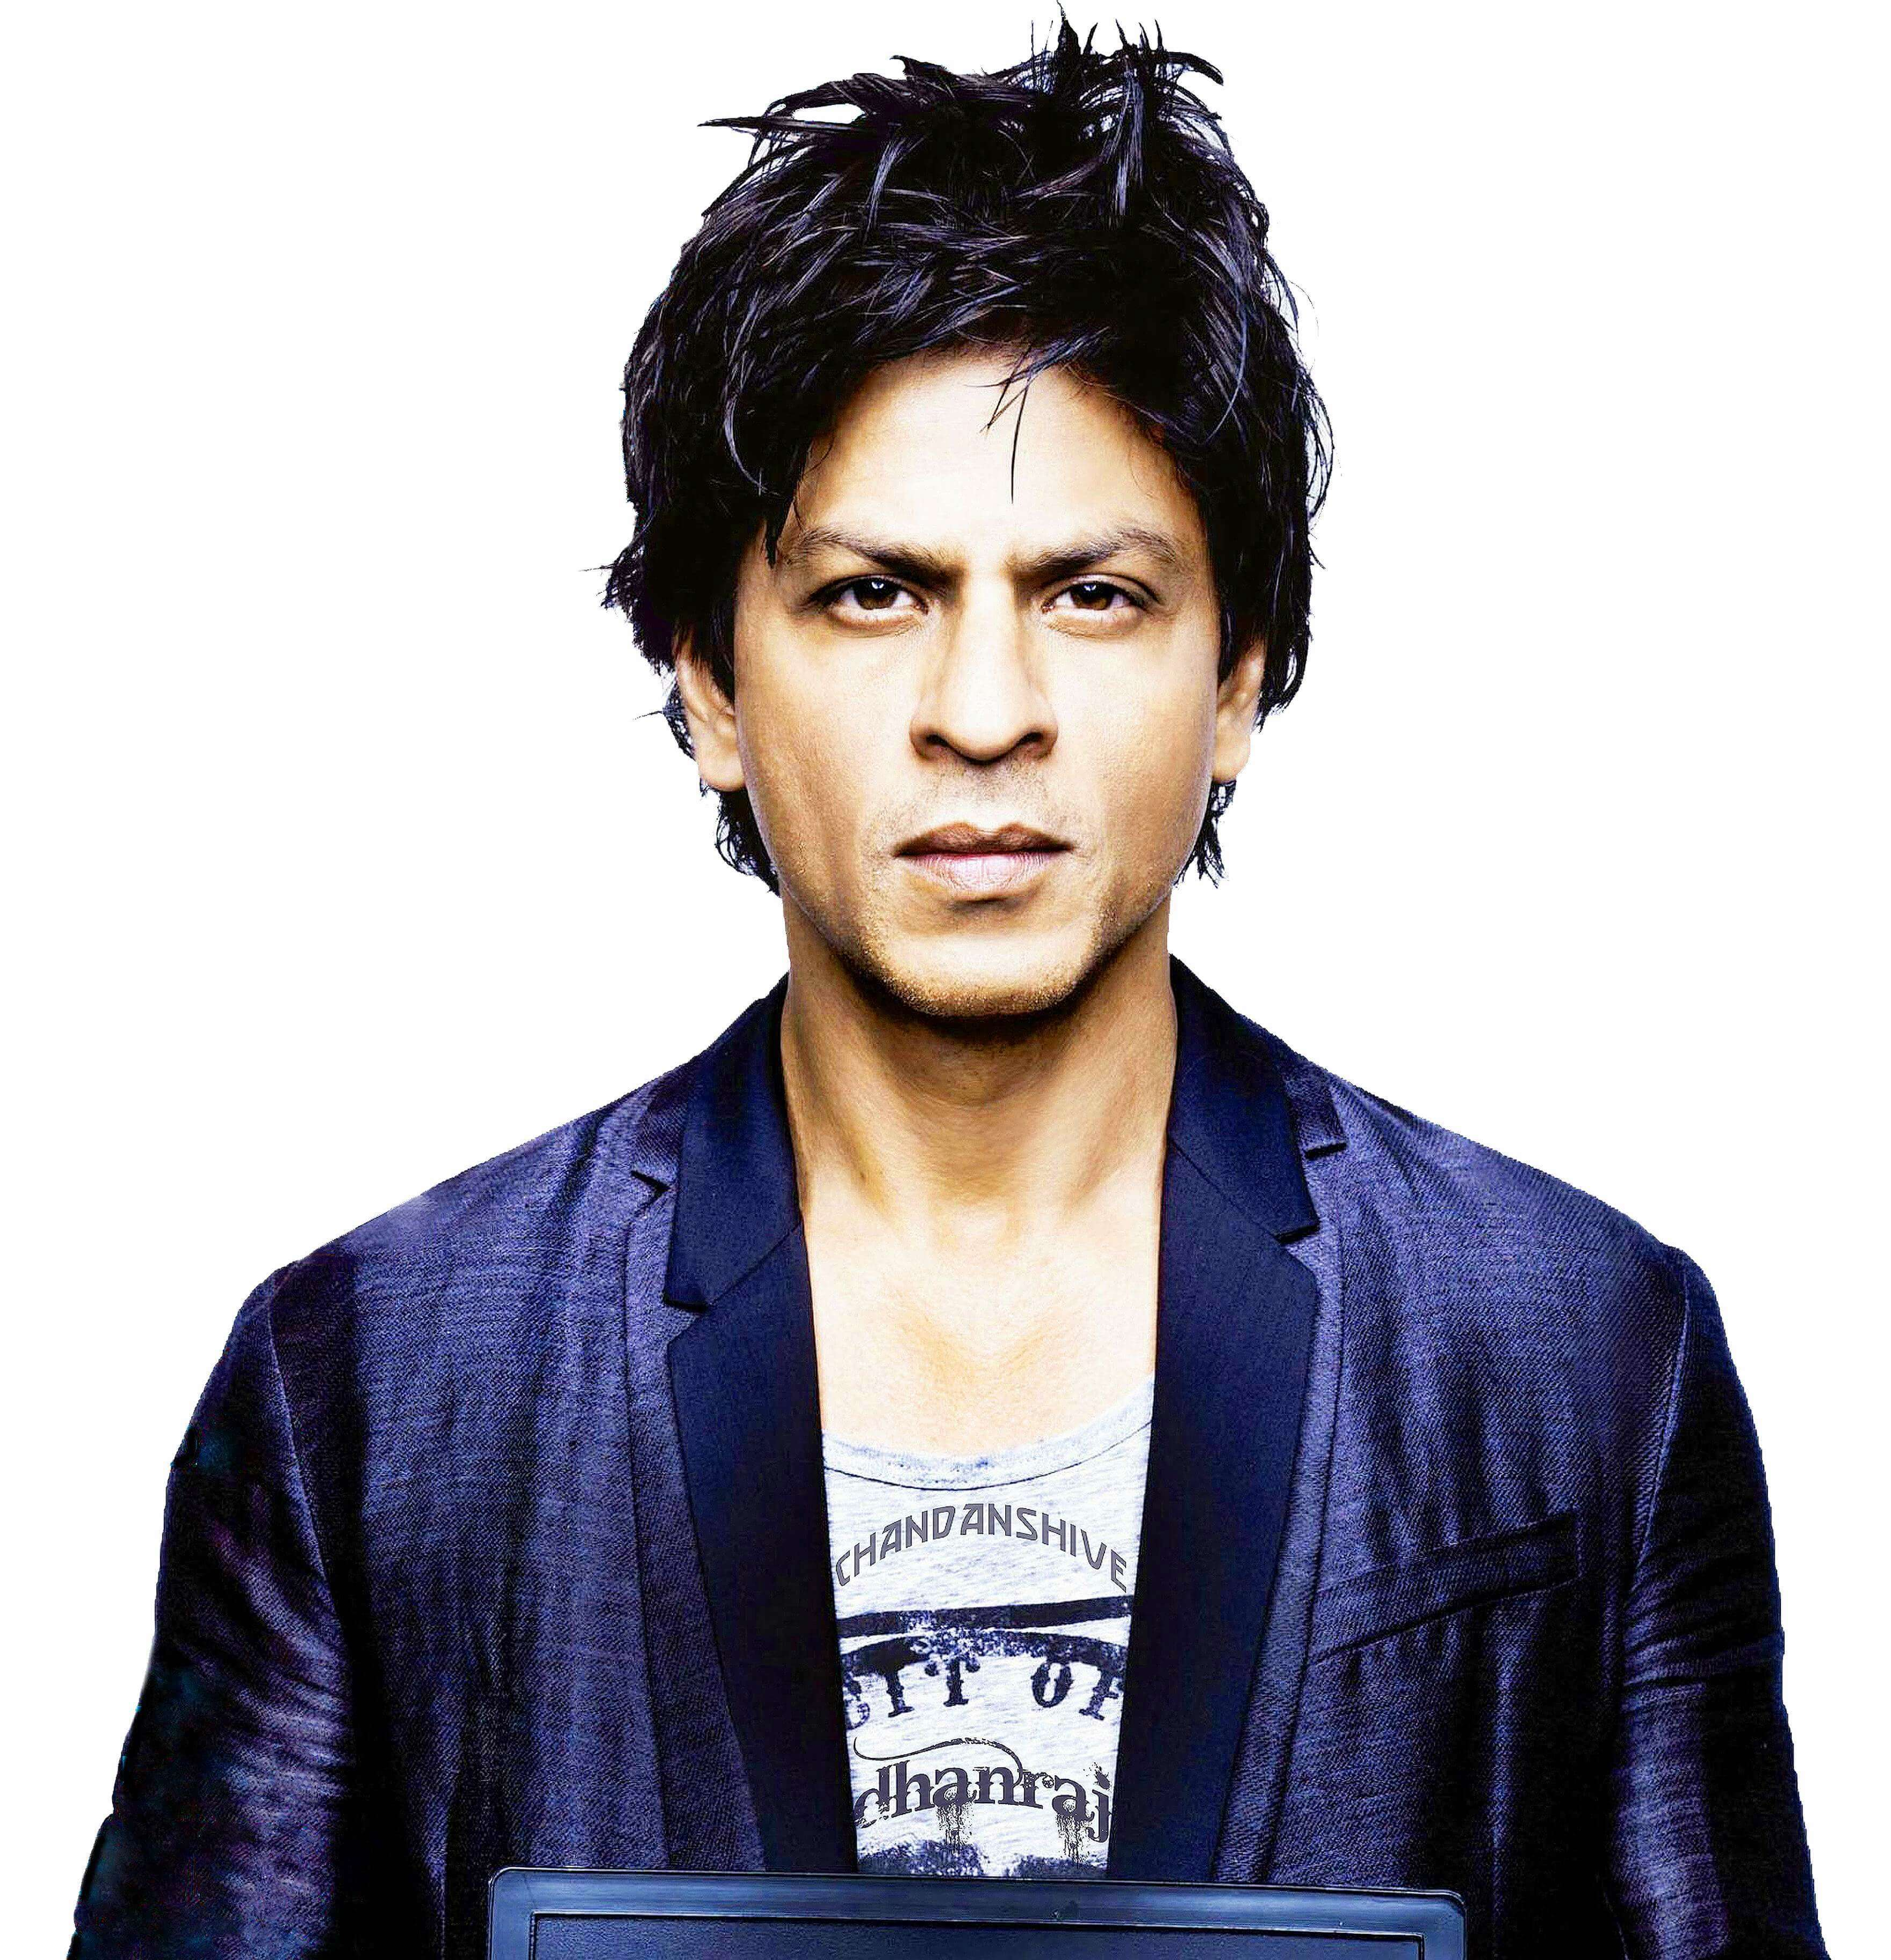 Shah Rukh Khan's autobiography 'Twenty Years In A Decade' to release soon